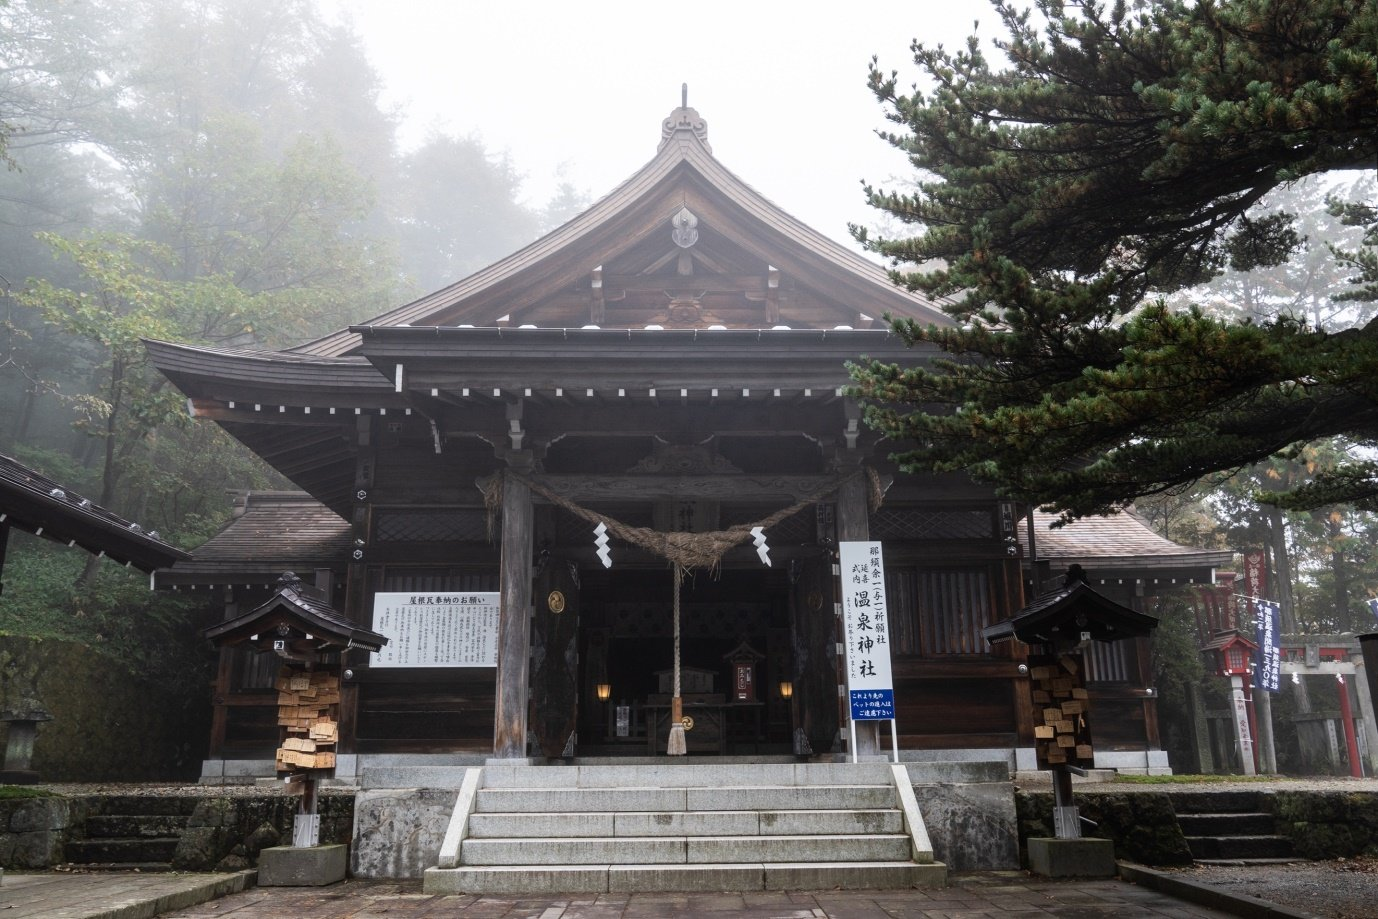 Nasu Yuzen Shrine surrounded in a thick layer of early morning fog makes for an unreal atmosphere to get you in the mood for a spiritual hike